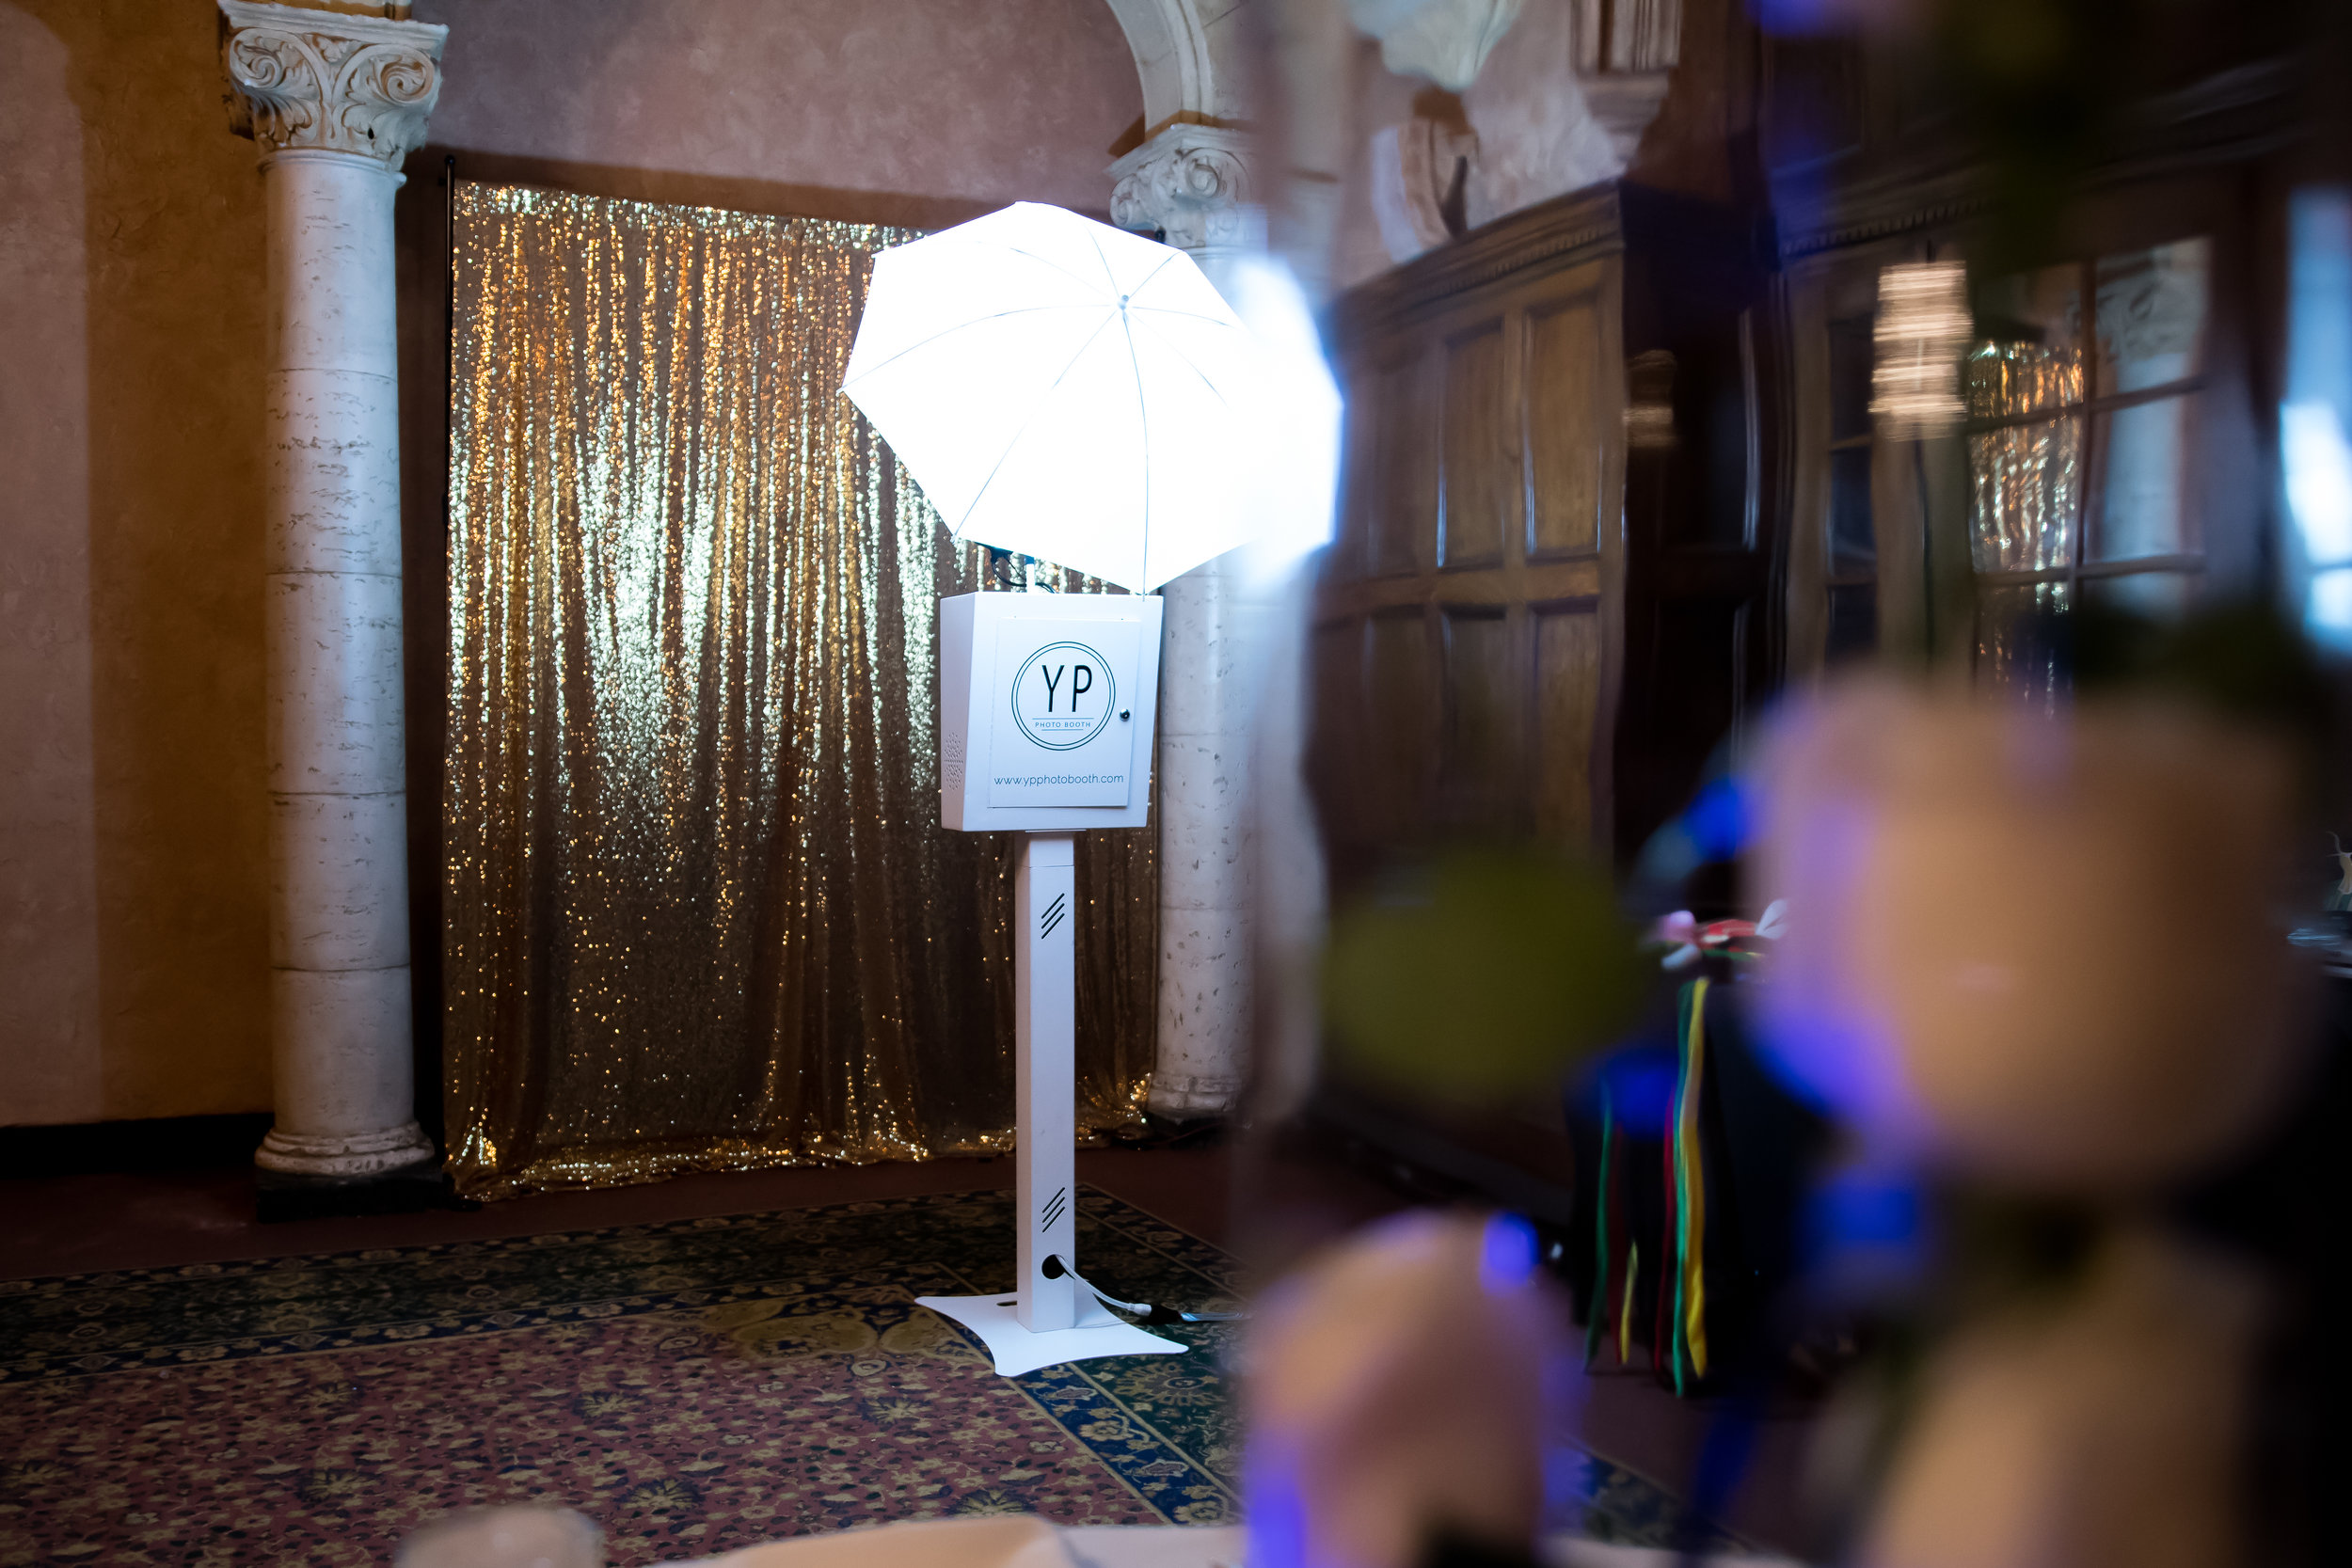 photo booth setup.JPG